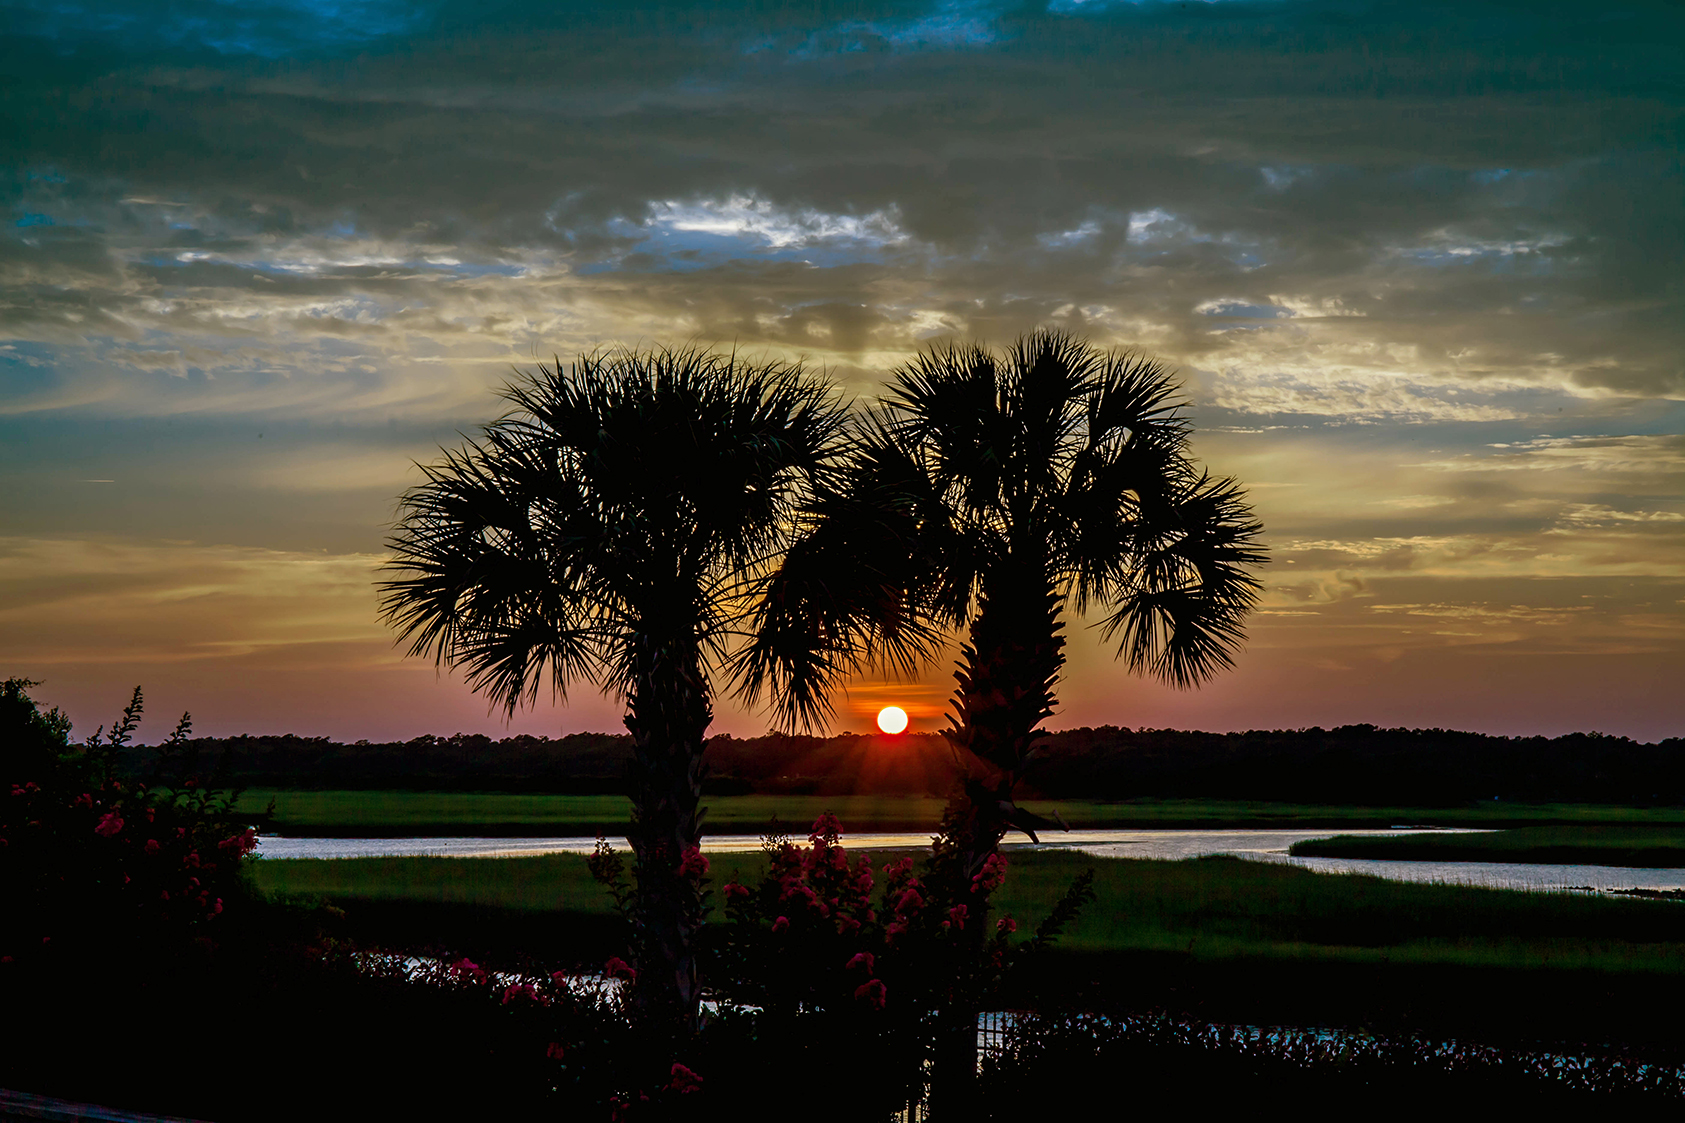 Palm Sunset Ocean Isle Beach Photo by Dwayne Schmidt